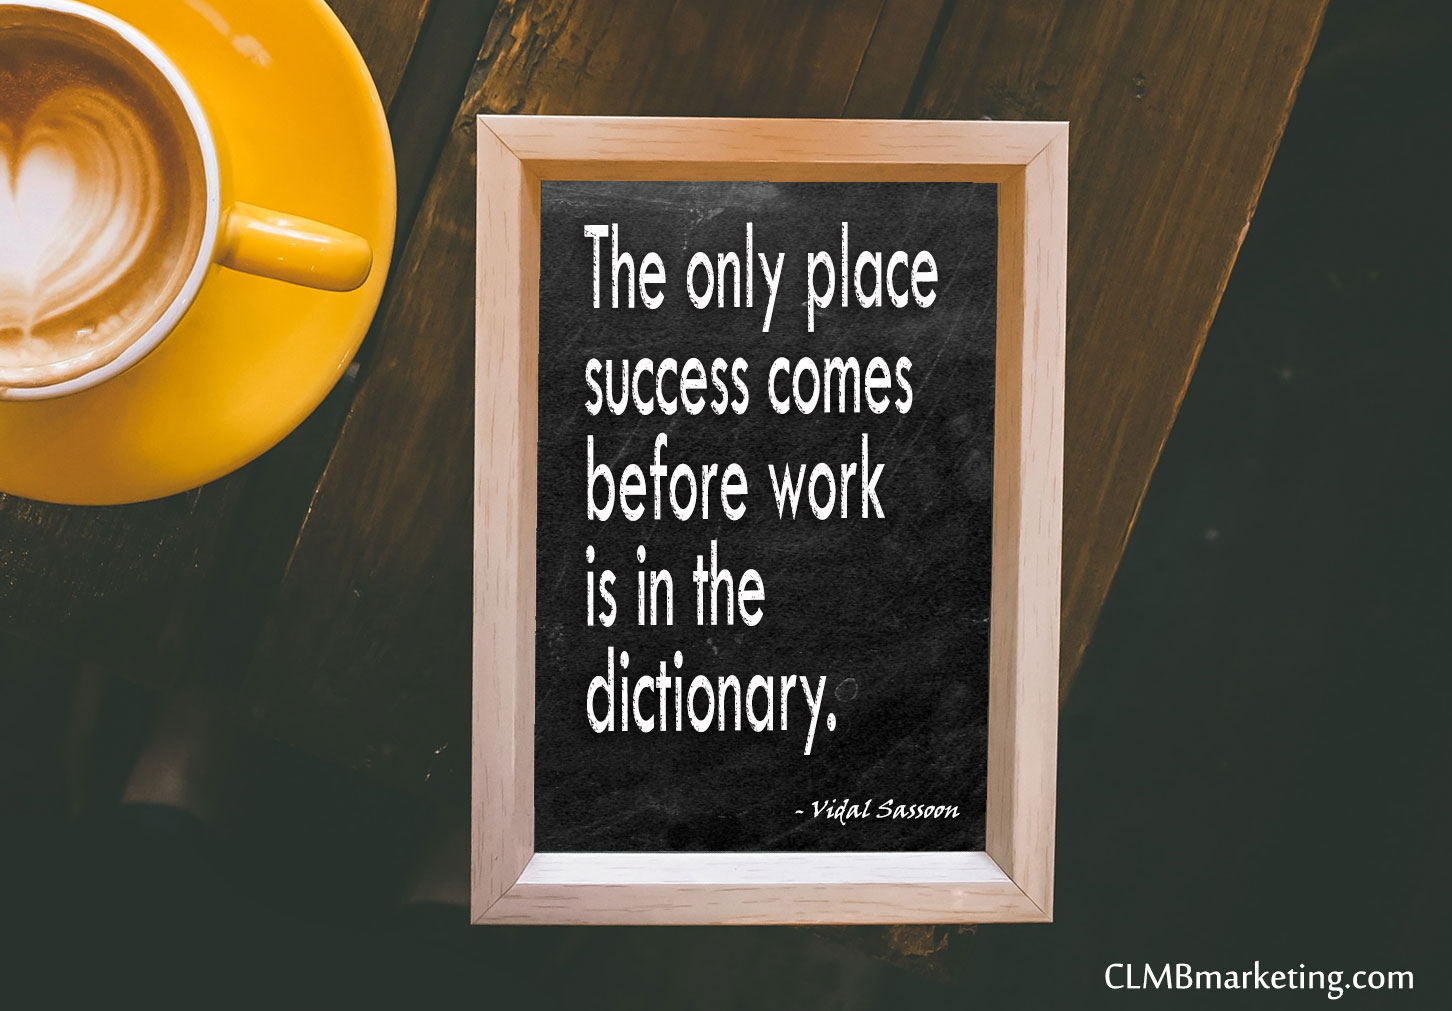 The only place success comes before work is in the dictionary. – Vidal Sassoon